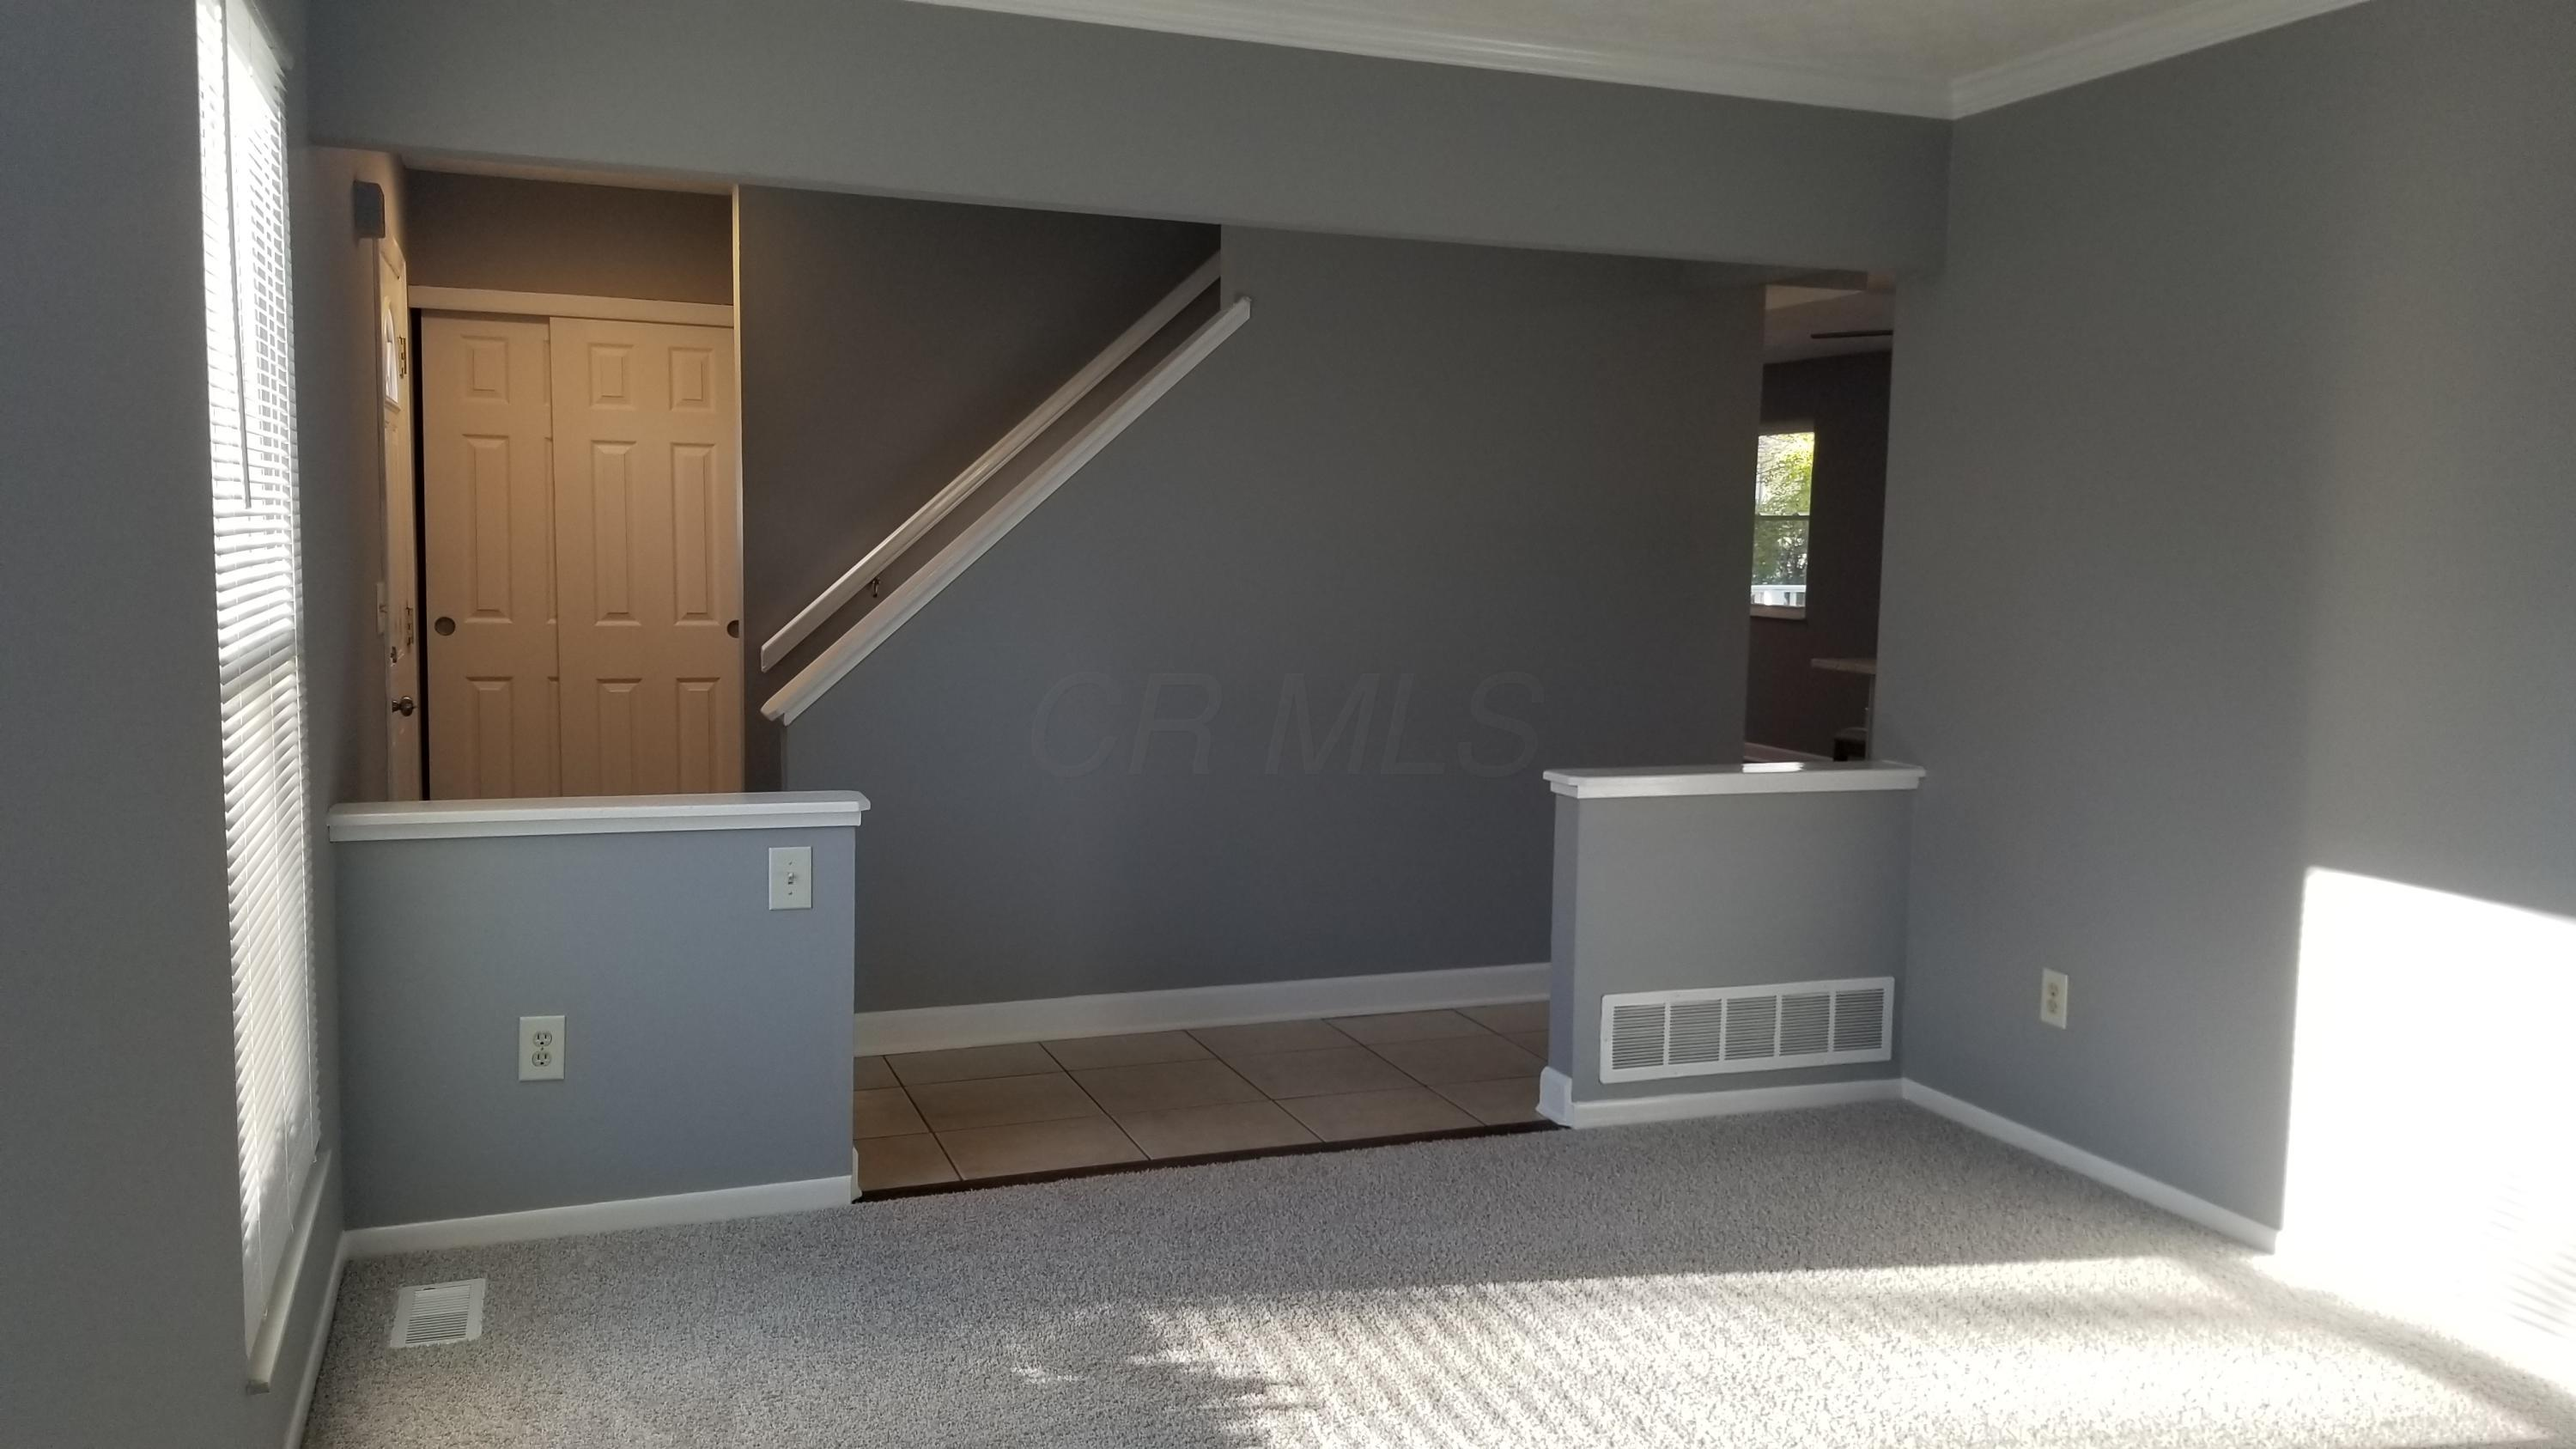 3126 Essington Drive, Dublin, Ohio 43017, 3 Bedrooms Bedrooms, ,2 BathroomsBathrooms,Residential,For Sale,Essington,220040123